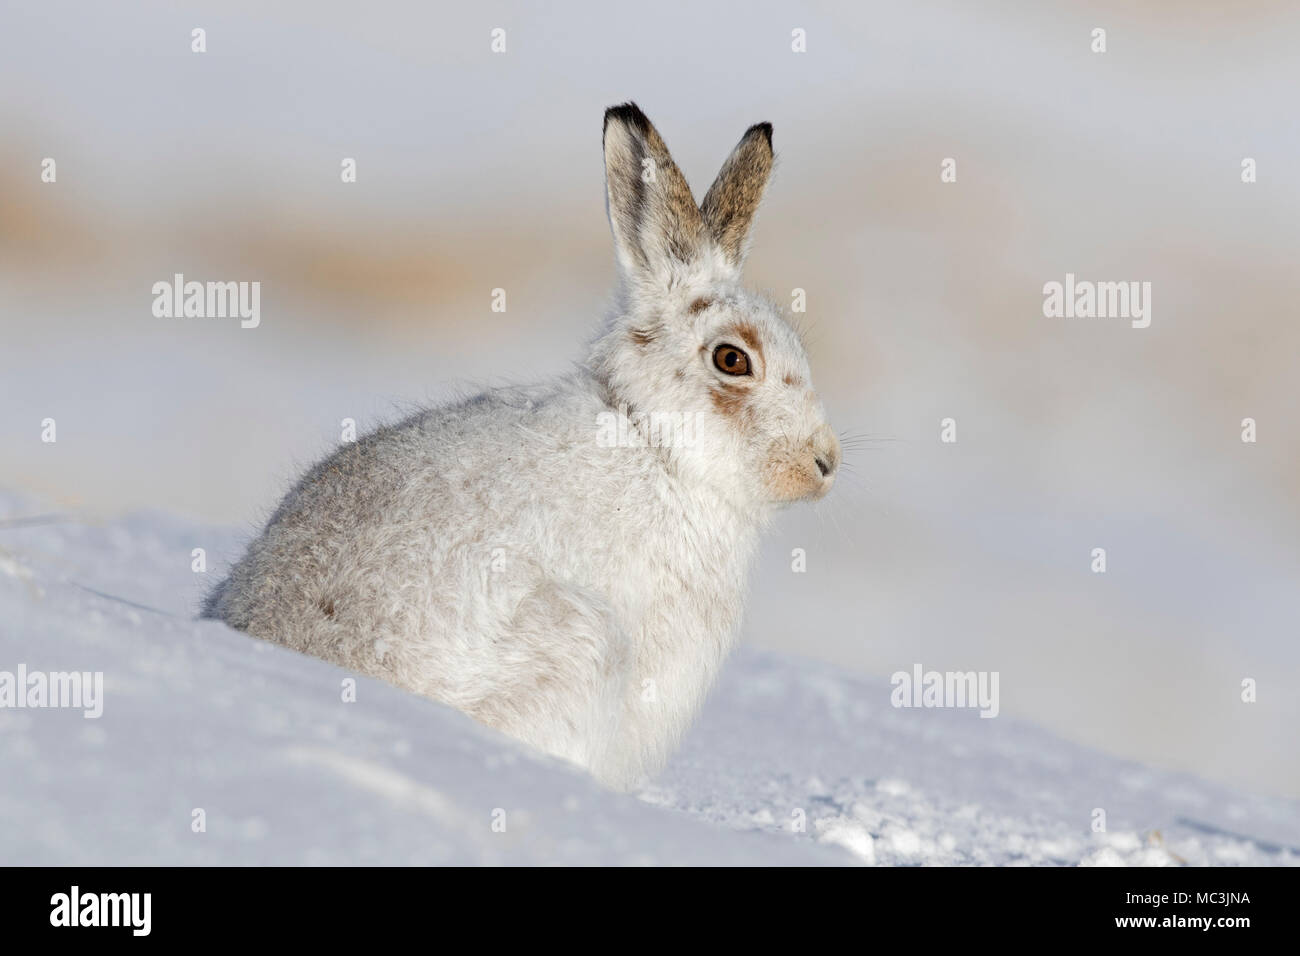 Mountain hare / Alpine hare / snow hare (Lepus timidus) in white winter pelage sitting in the snow - Stock Image